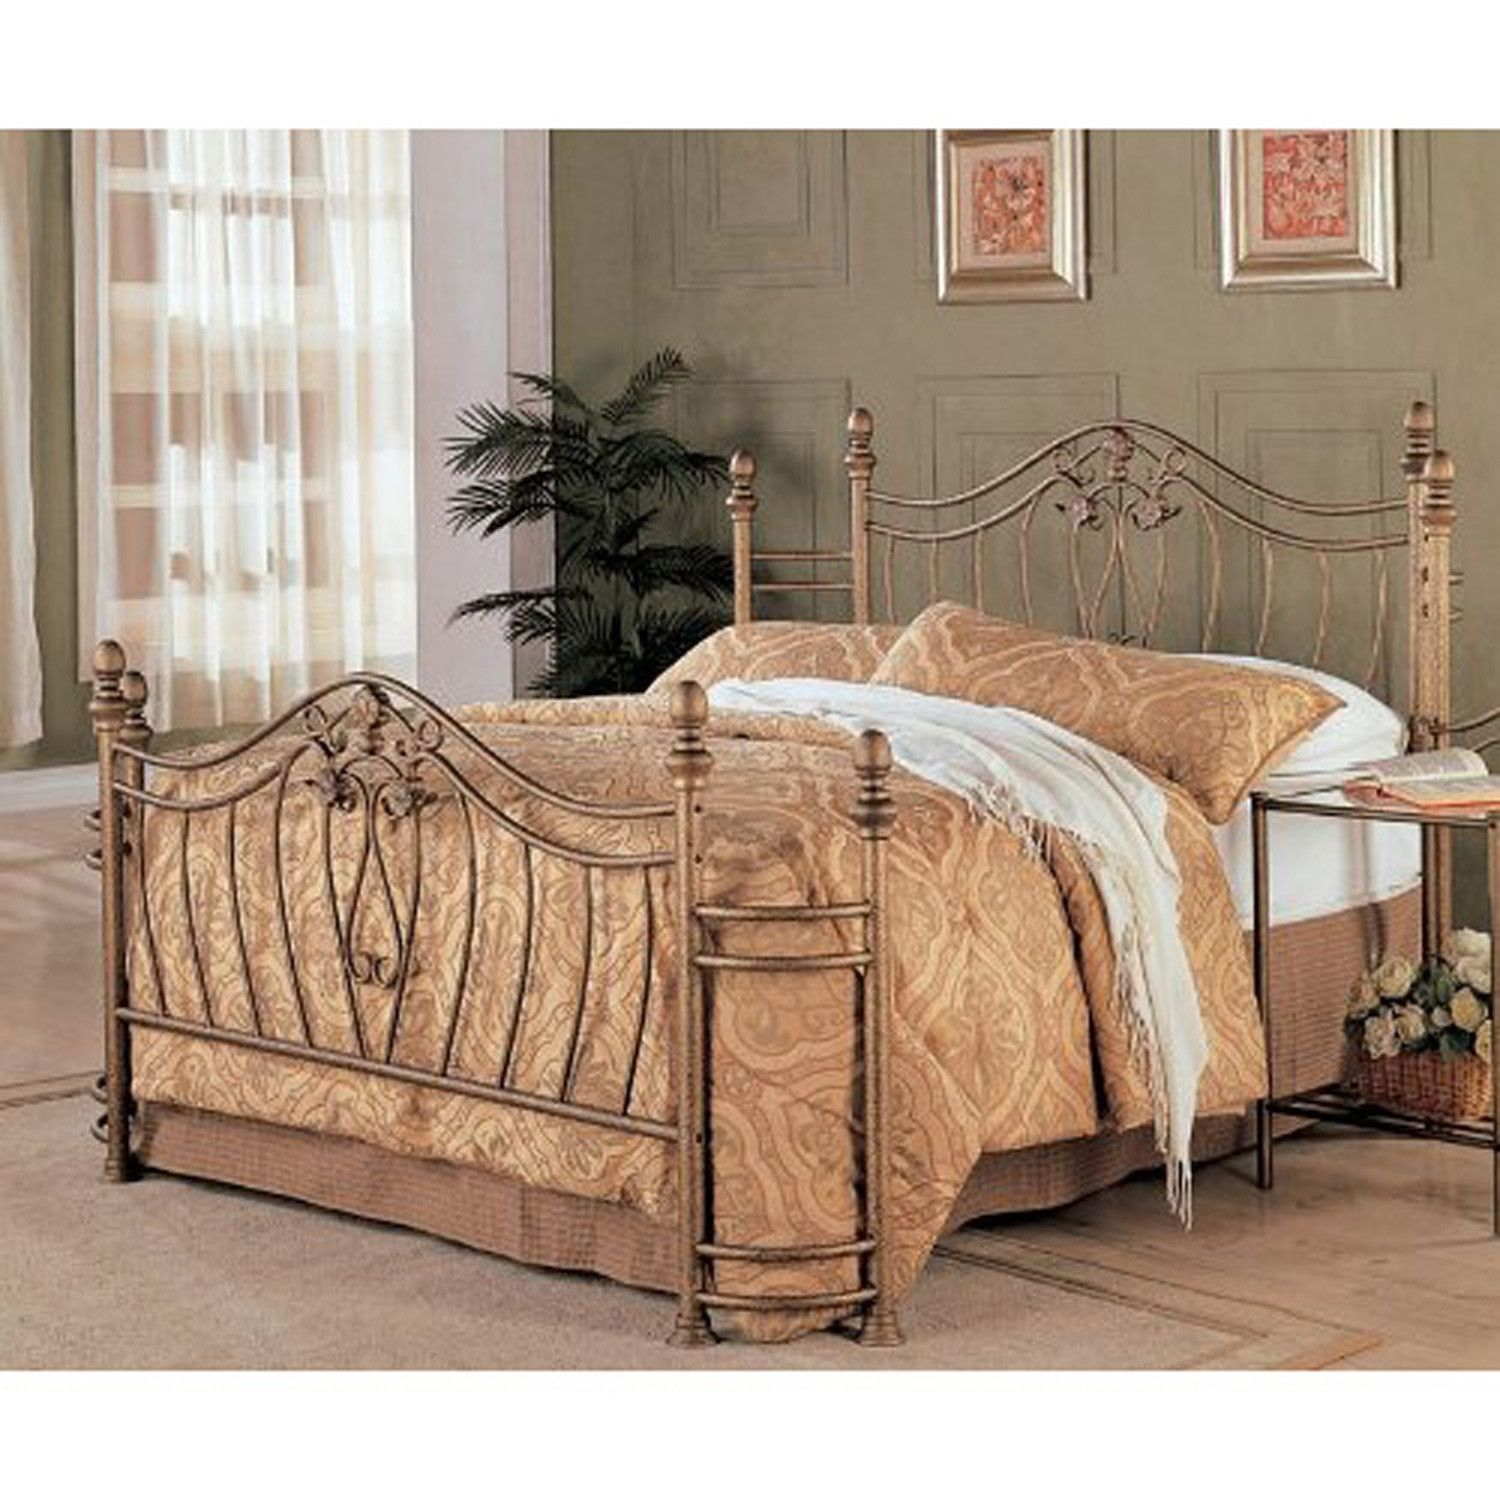 signature with upholstered furniture design ashley footboard bed products bench beds queen storage by